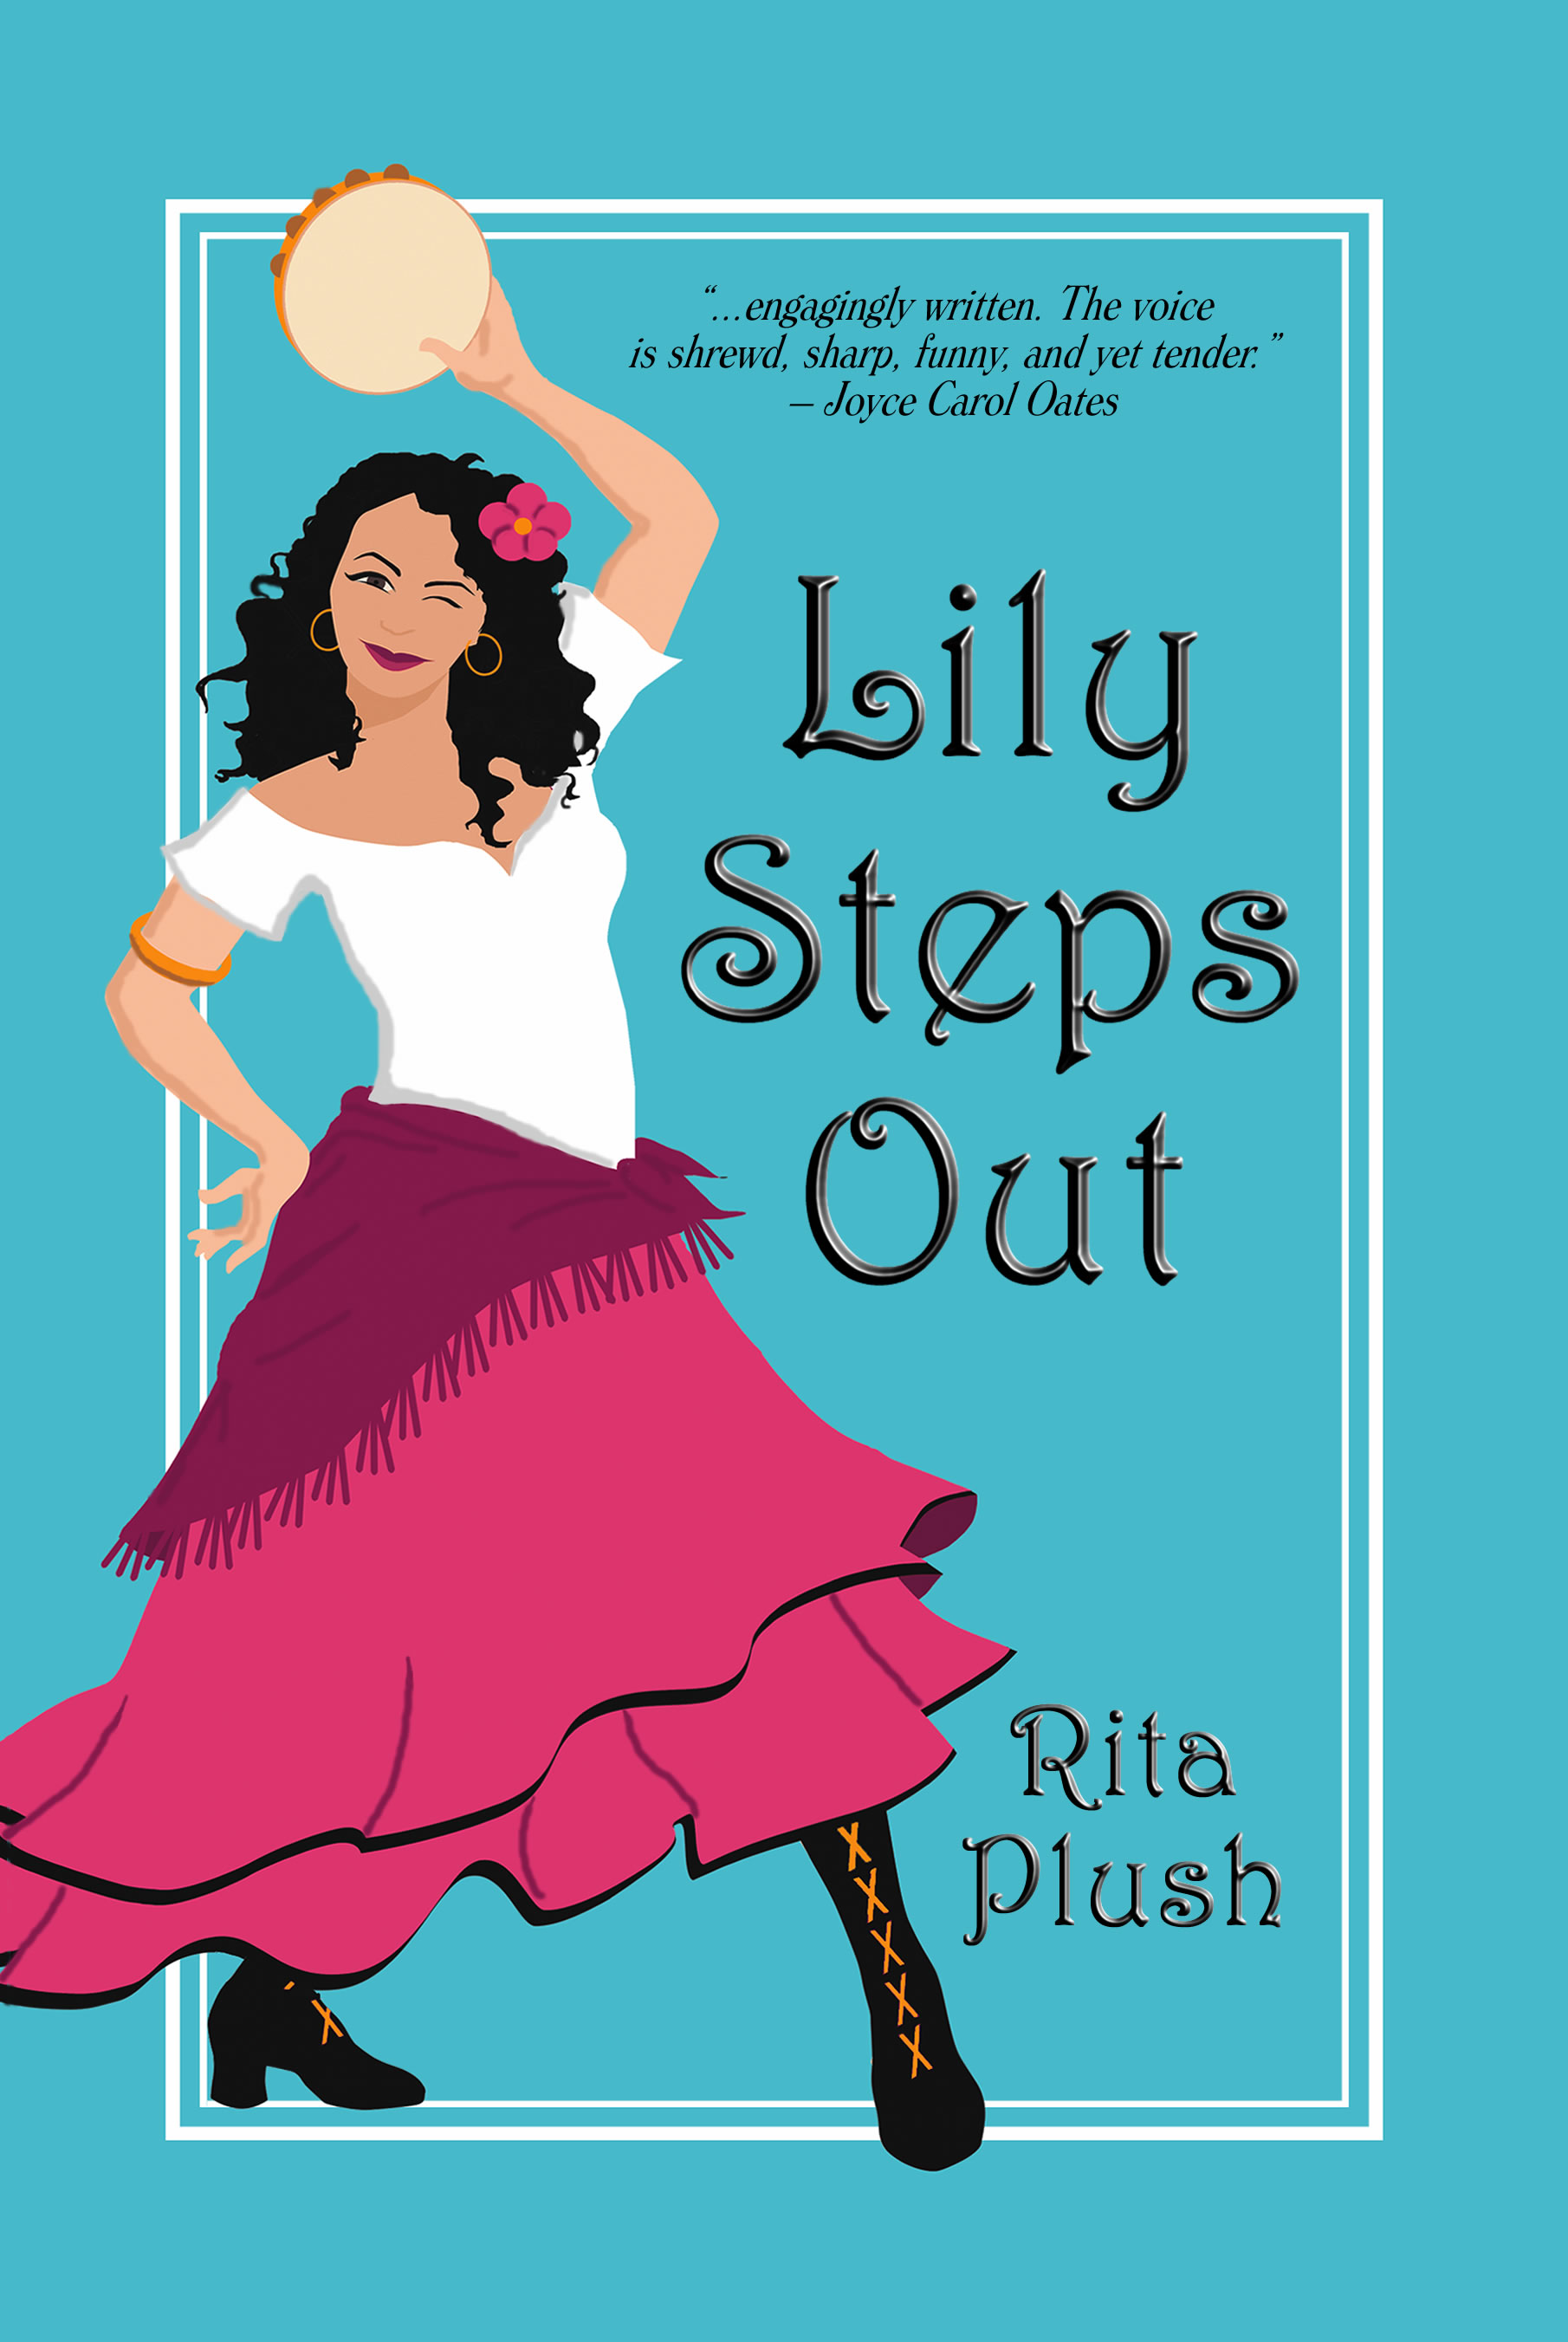 indieview with rita plush author of lily steps outthe